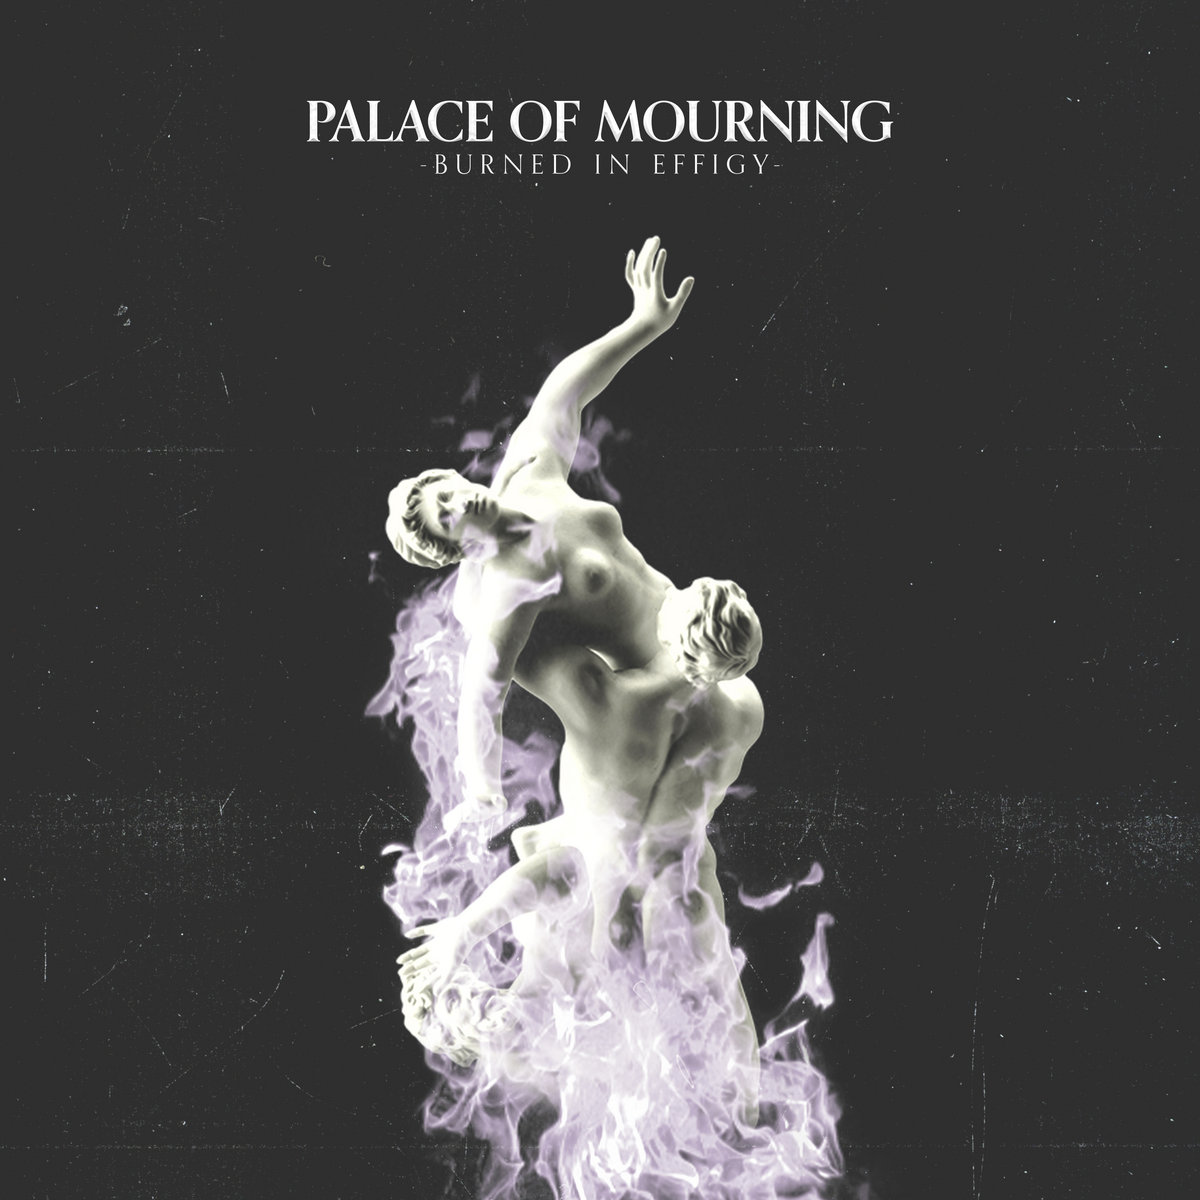 https://palaceofmourning.bandcamp.com/album/burned-in-effigy